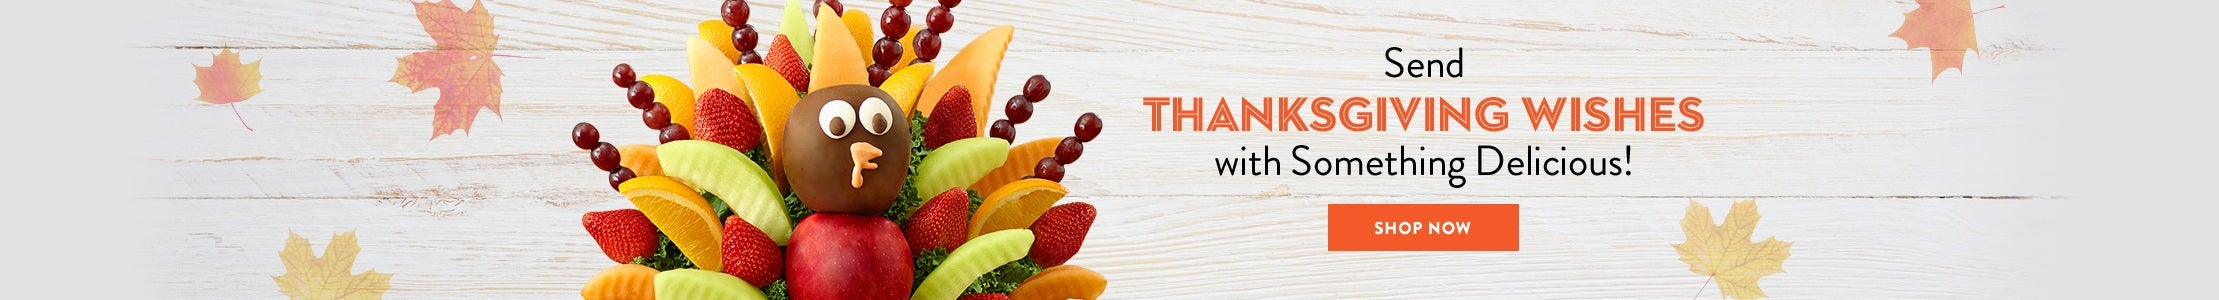 Send Thanksgiving Wishes with Something Delicious!